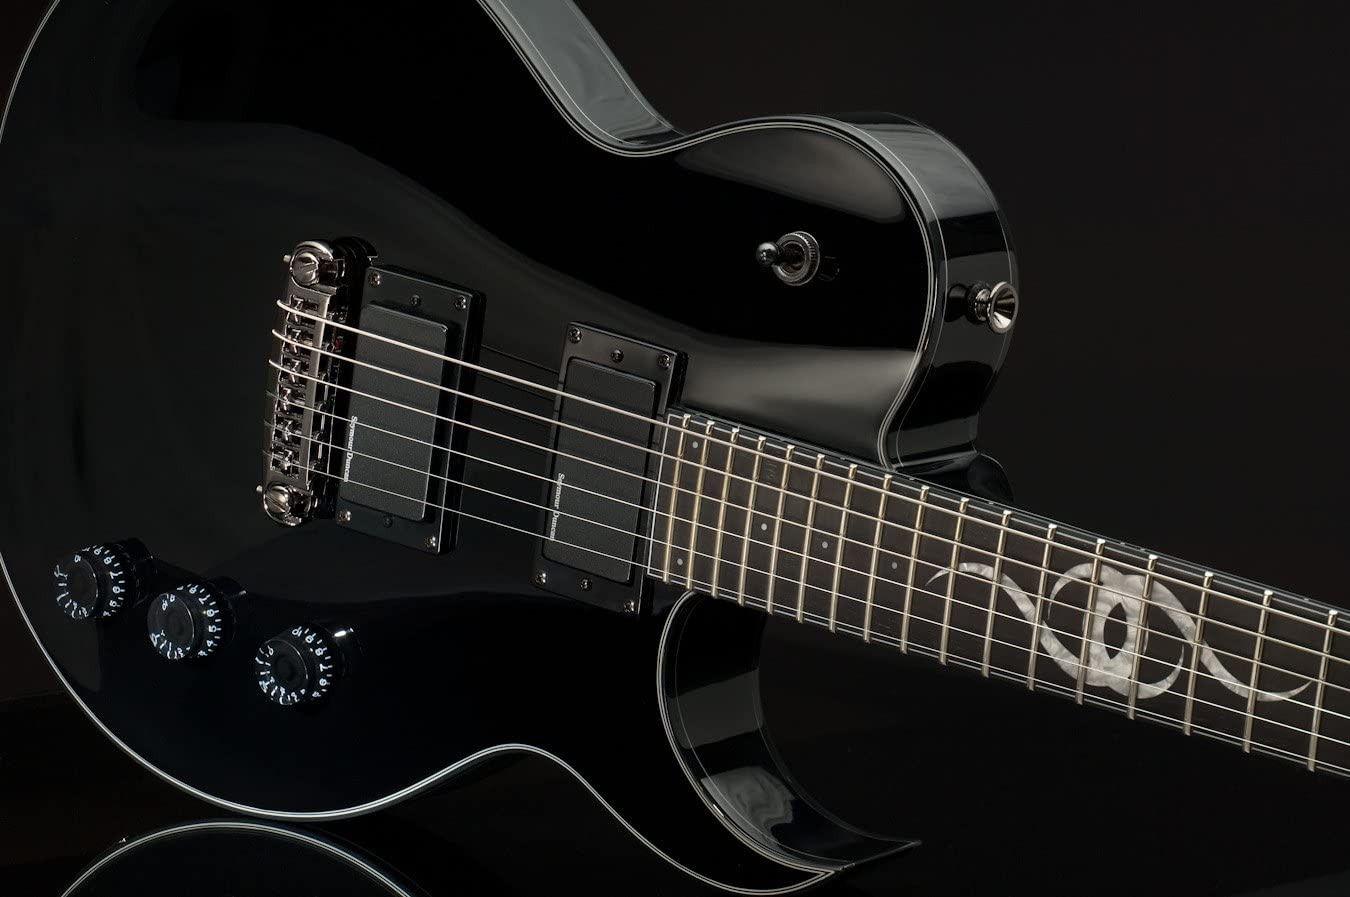 Ethan Hart Guitar Store EH-1 Black Discount is also underway with Binding White Cutaway Single